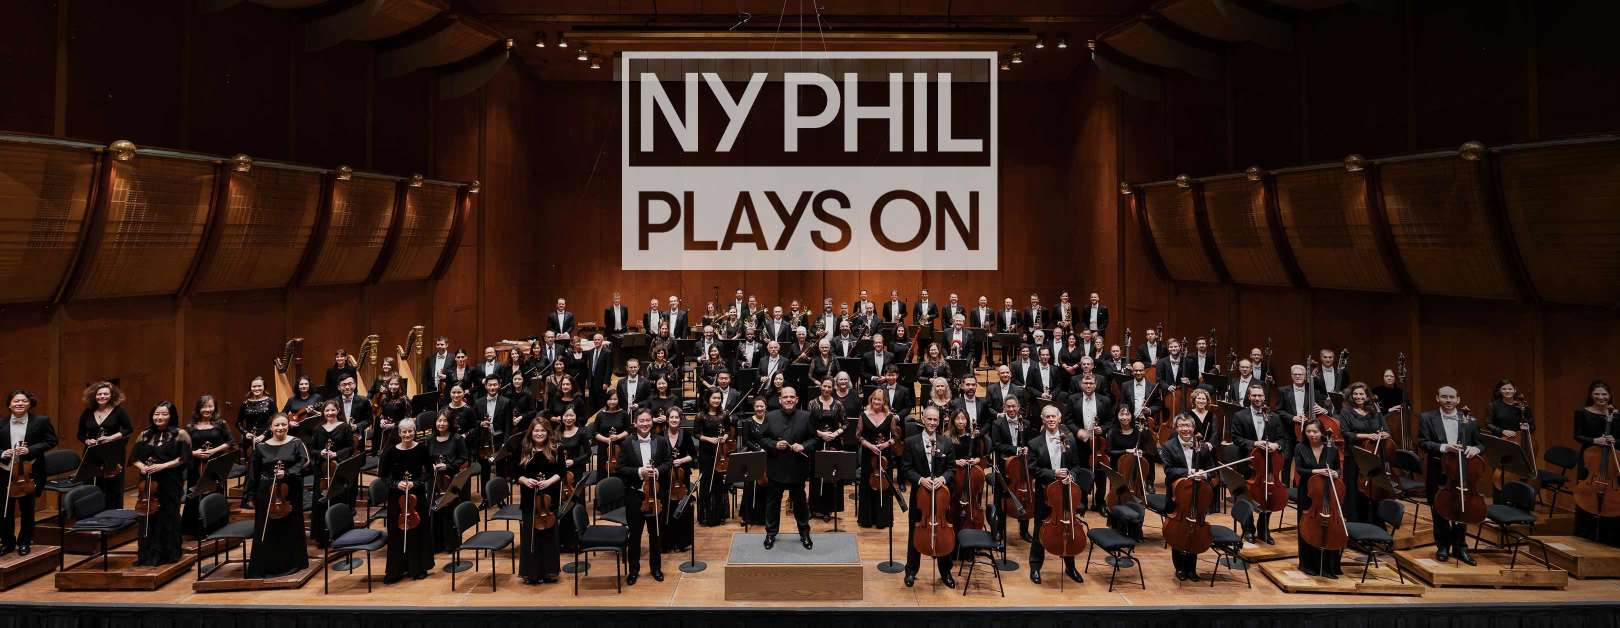 Introducing NY Phil Plays On